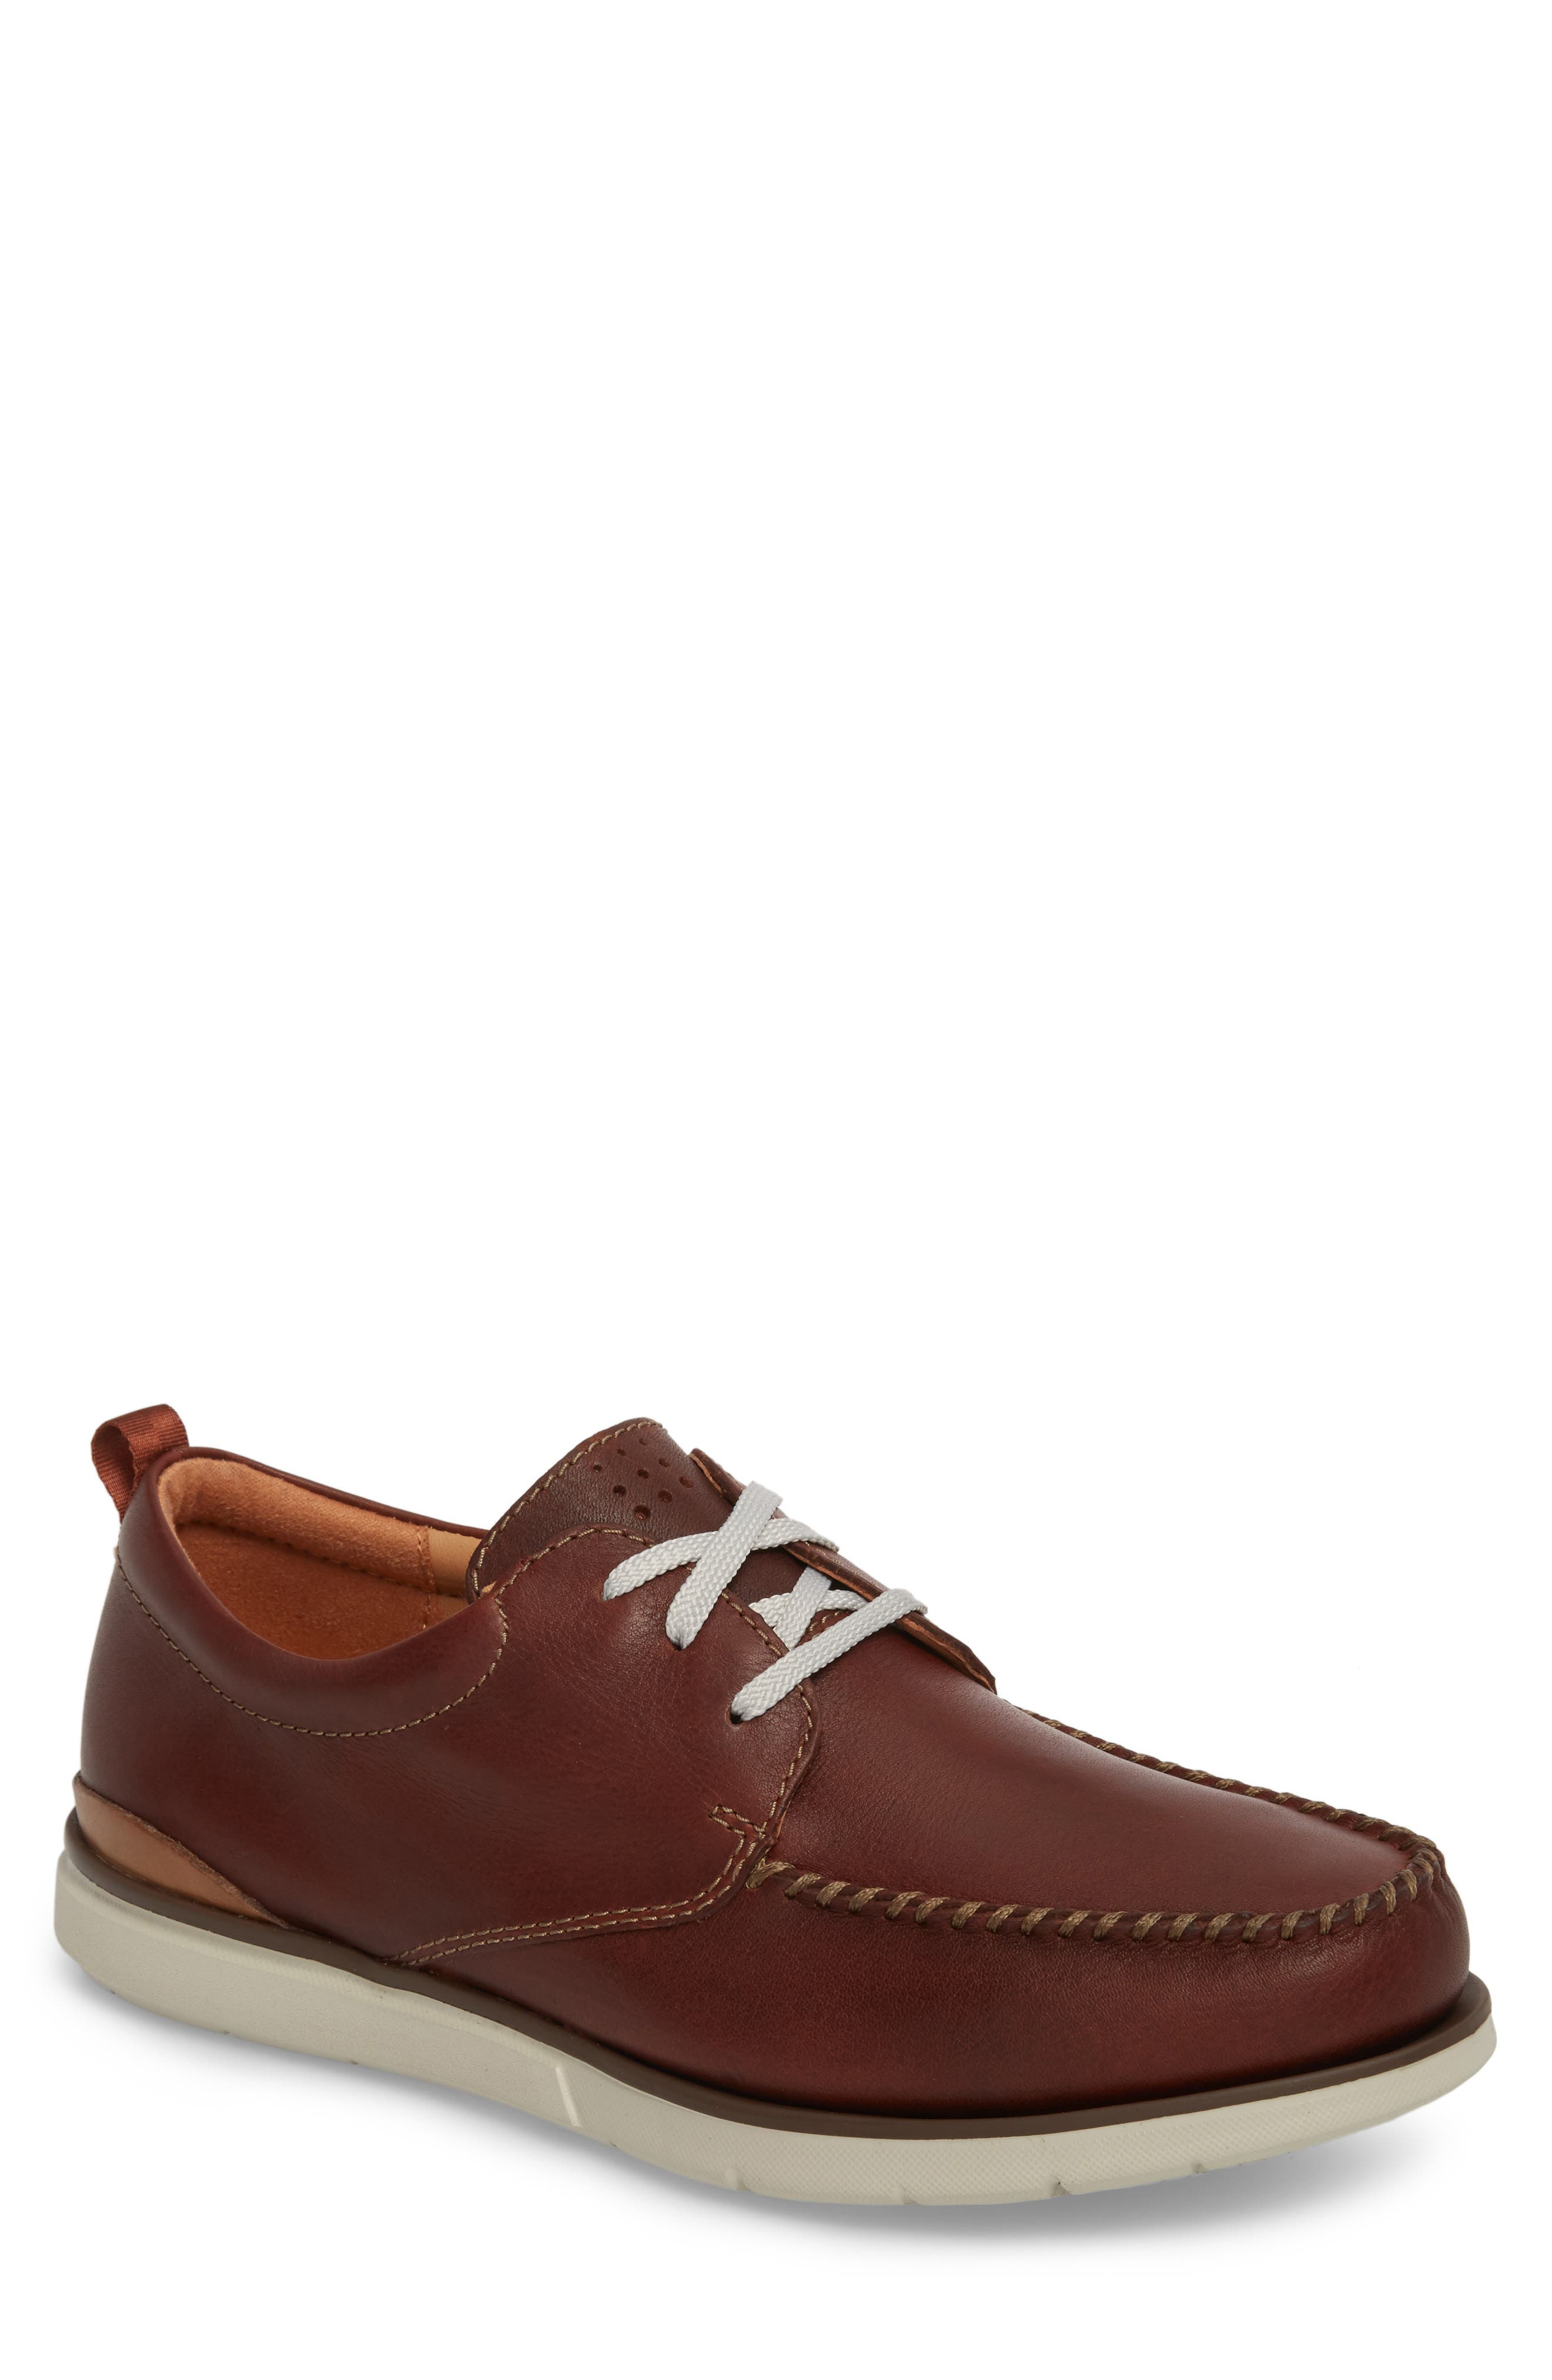 Edgewood Mix Moc Toe Derby,                         Main,                         color, 202